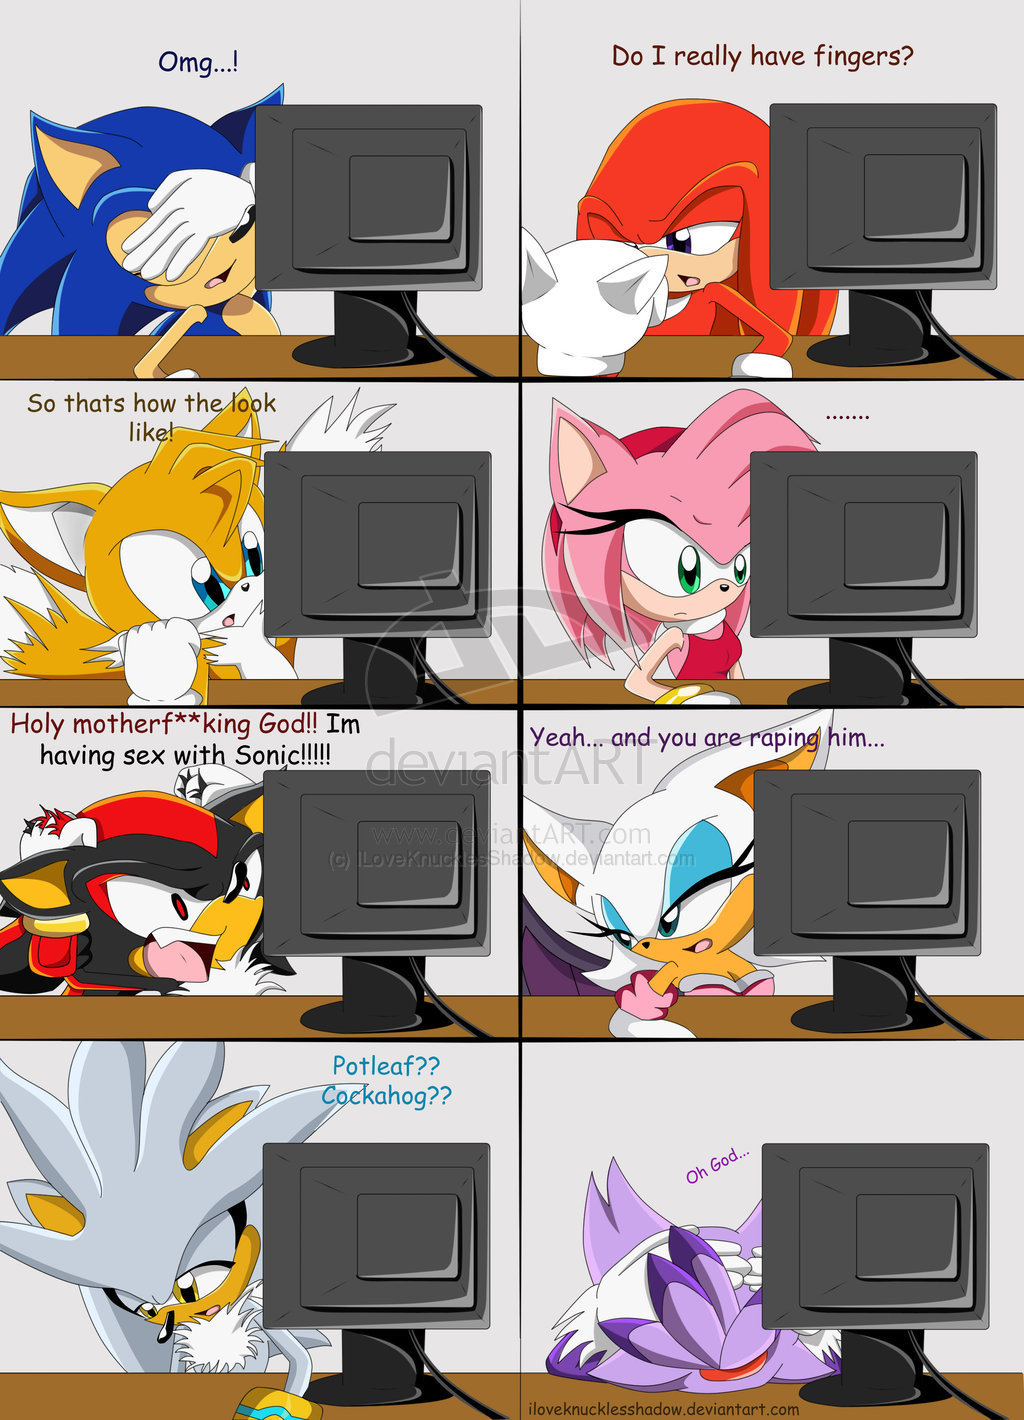 Sonic, Shadow, and Silver shadow's big secret (really funny)